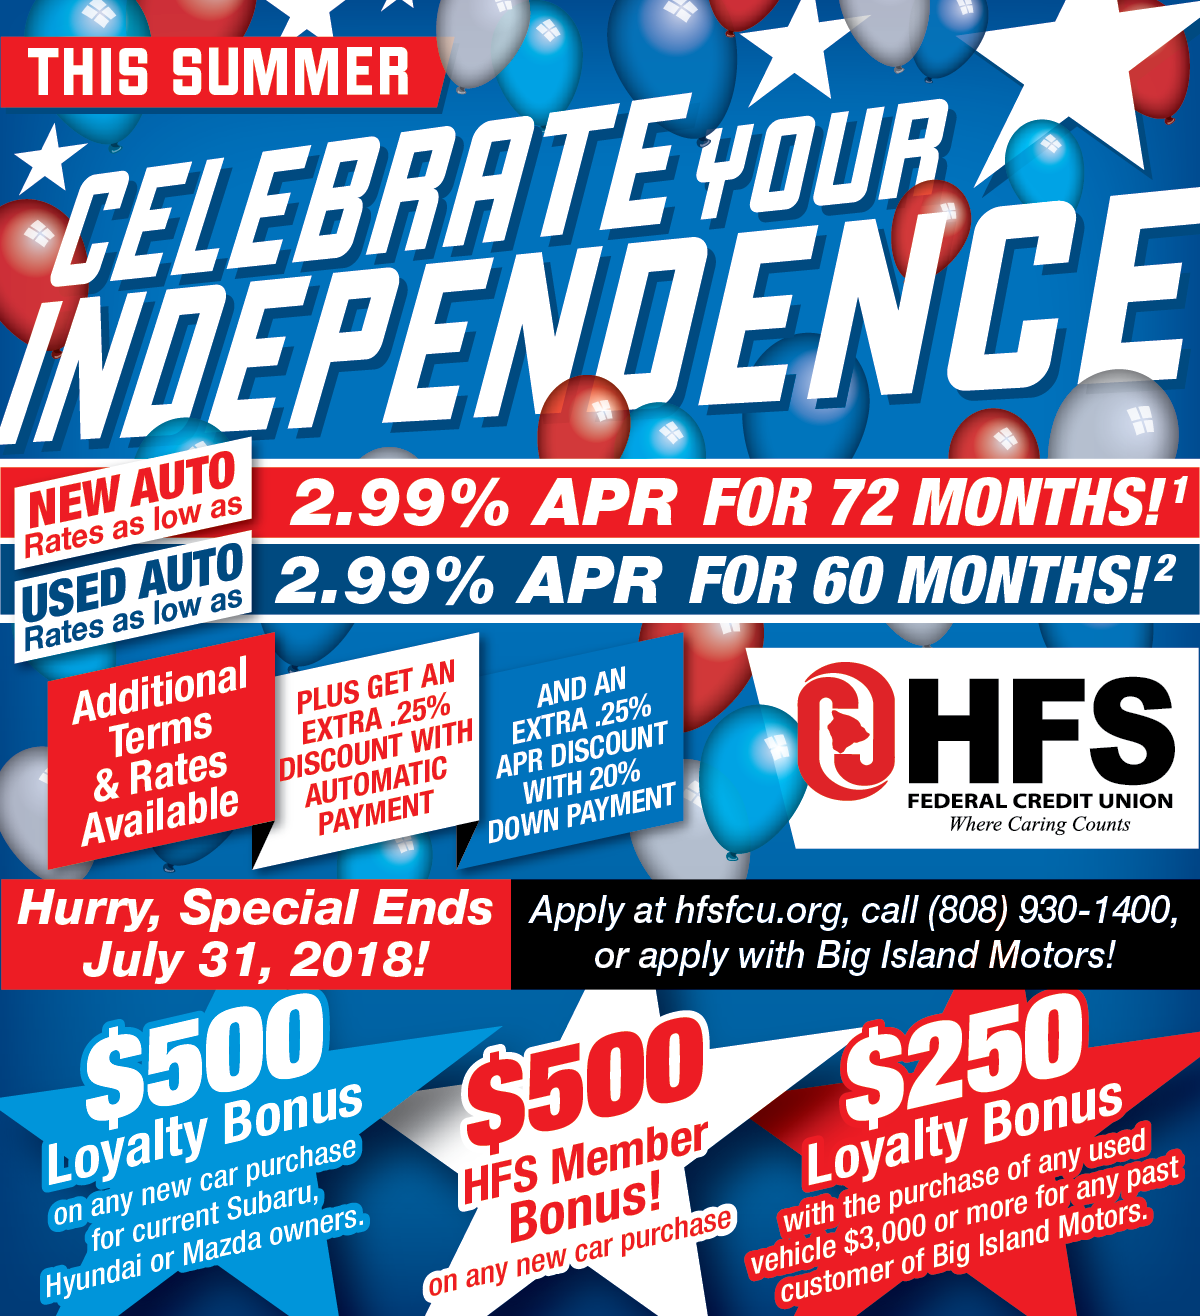 Celebrate Your Independance